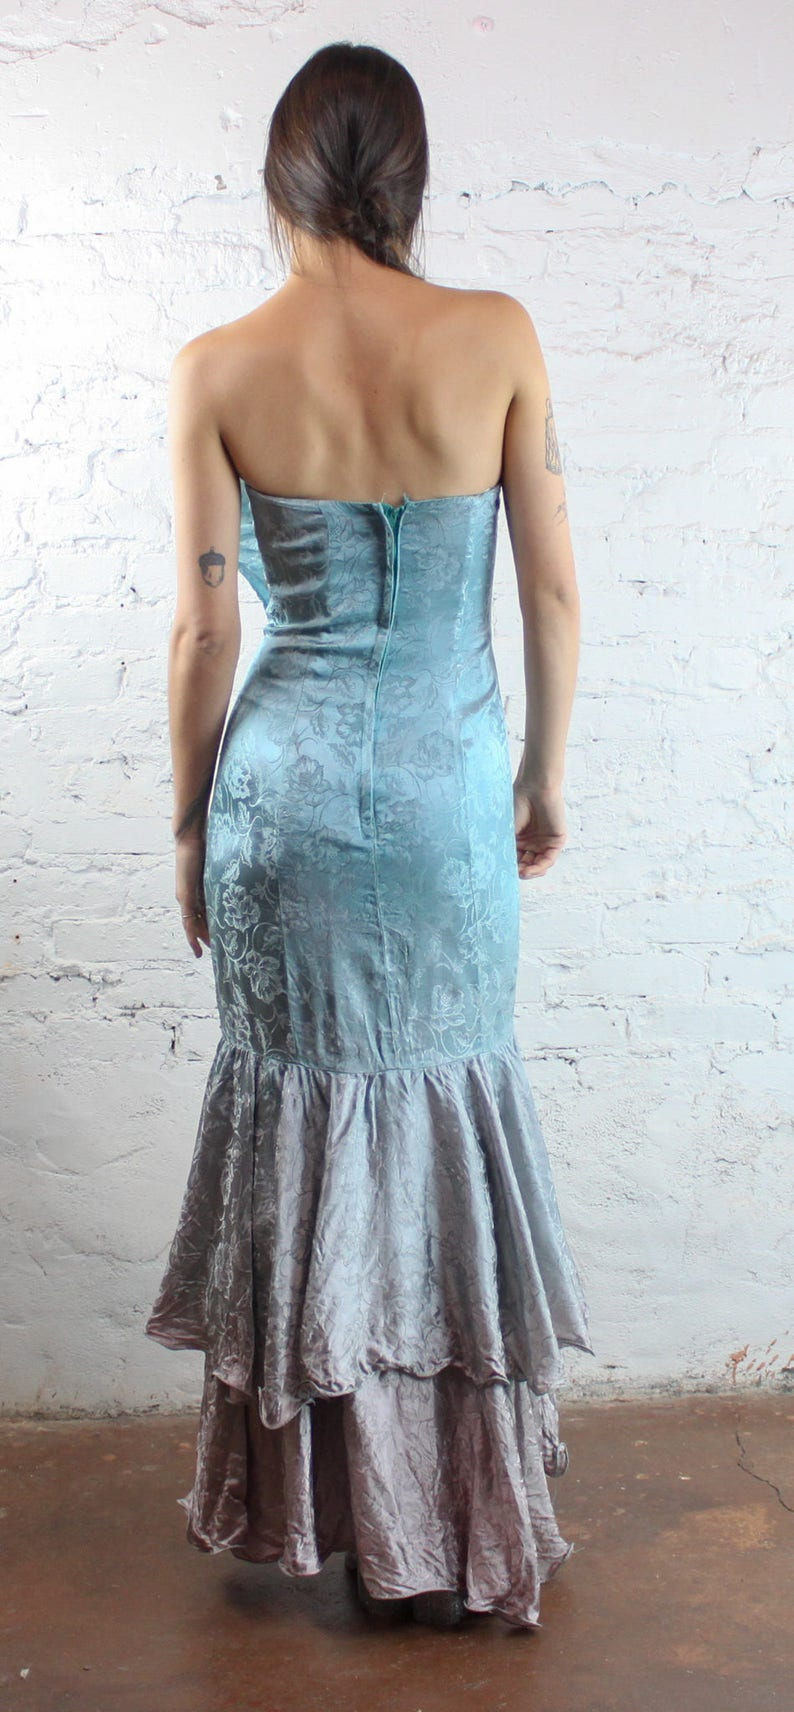 ac3ed8b89b59 80's Hand Dyed Mermaid Fishtail Prom Dress in XS Faded | Etsy